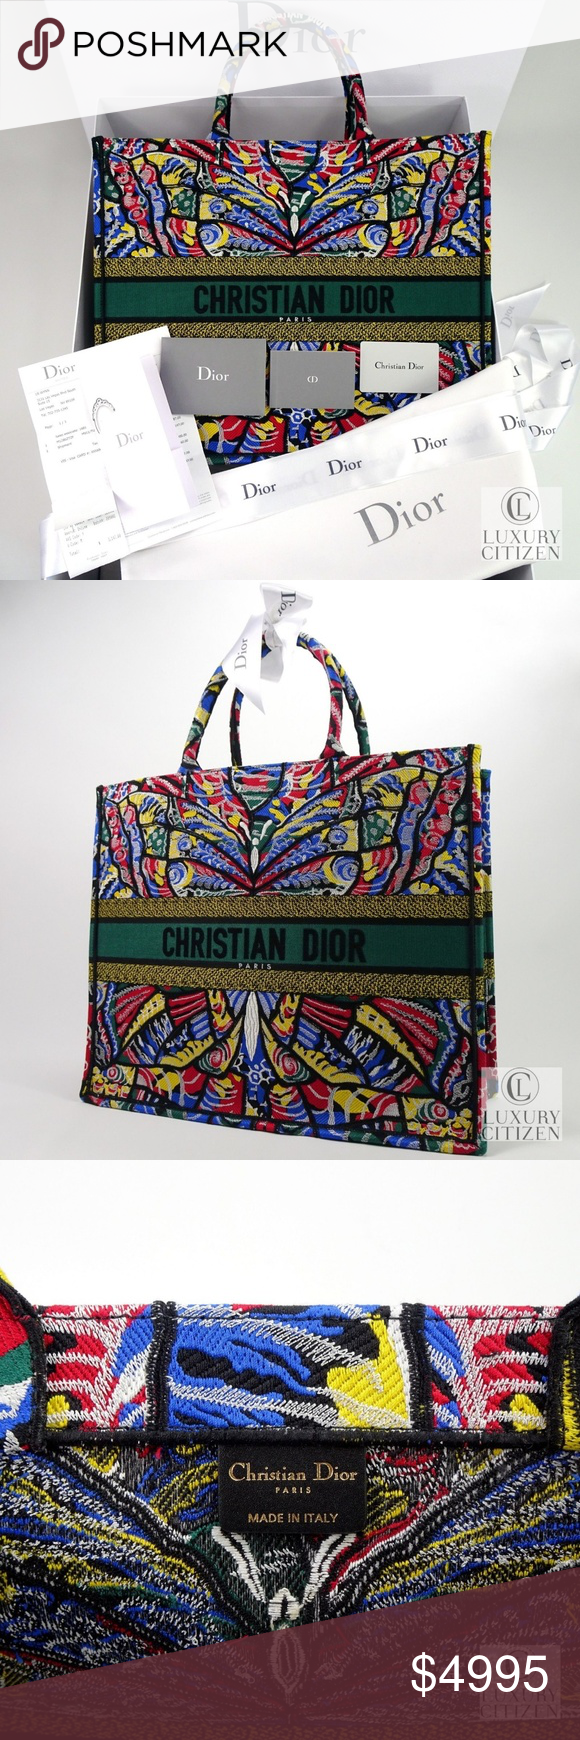 2d48136ffcbb20 NEW DIOR BOOK TOTE EMBROIDERED BUTTERFLY Limited I can sell this bag for  $3995 if dealing